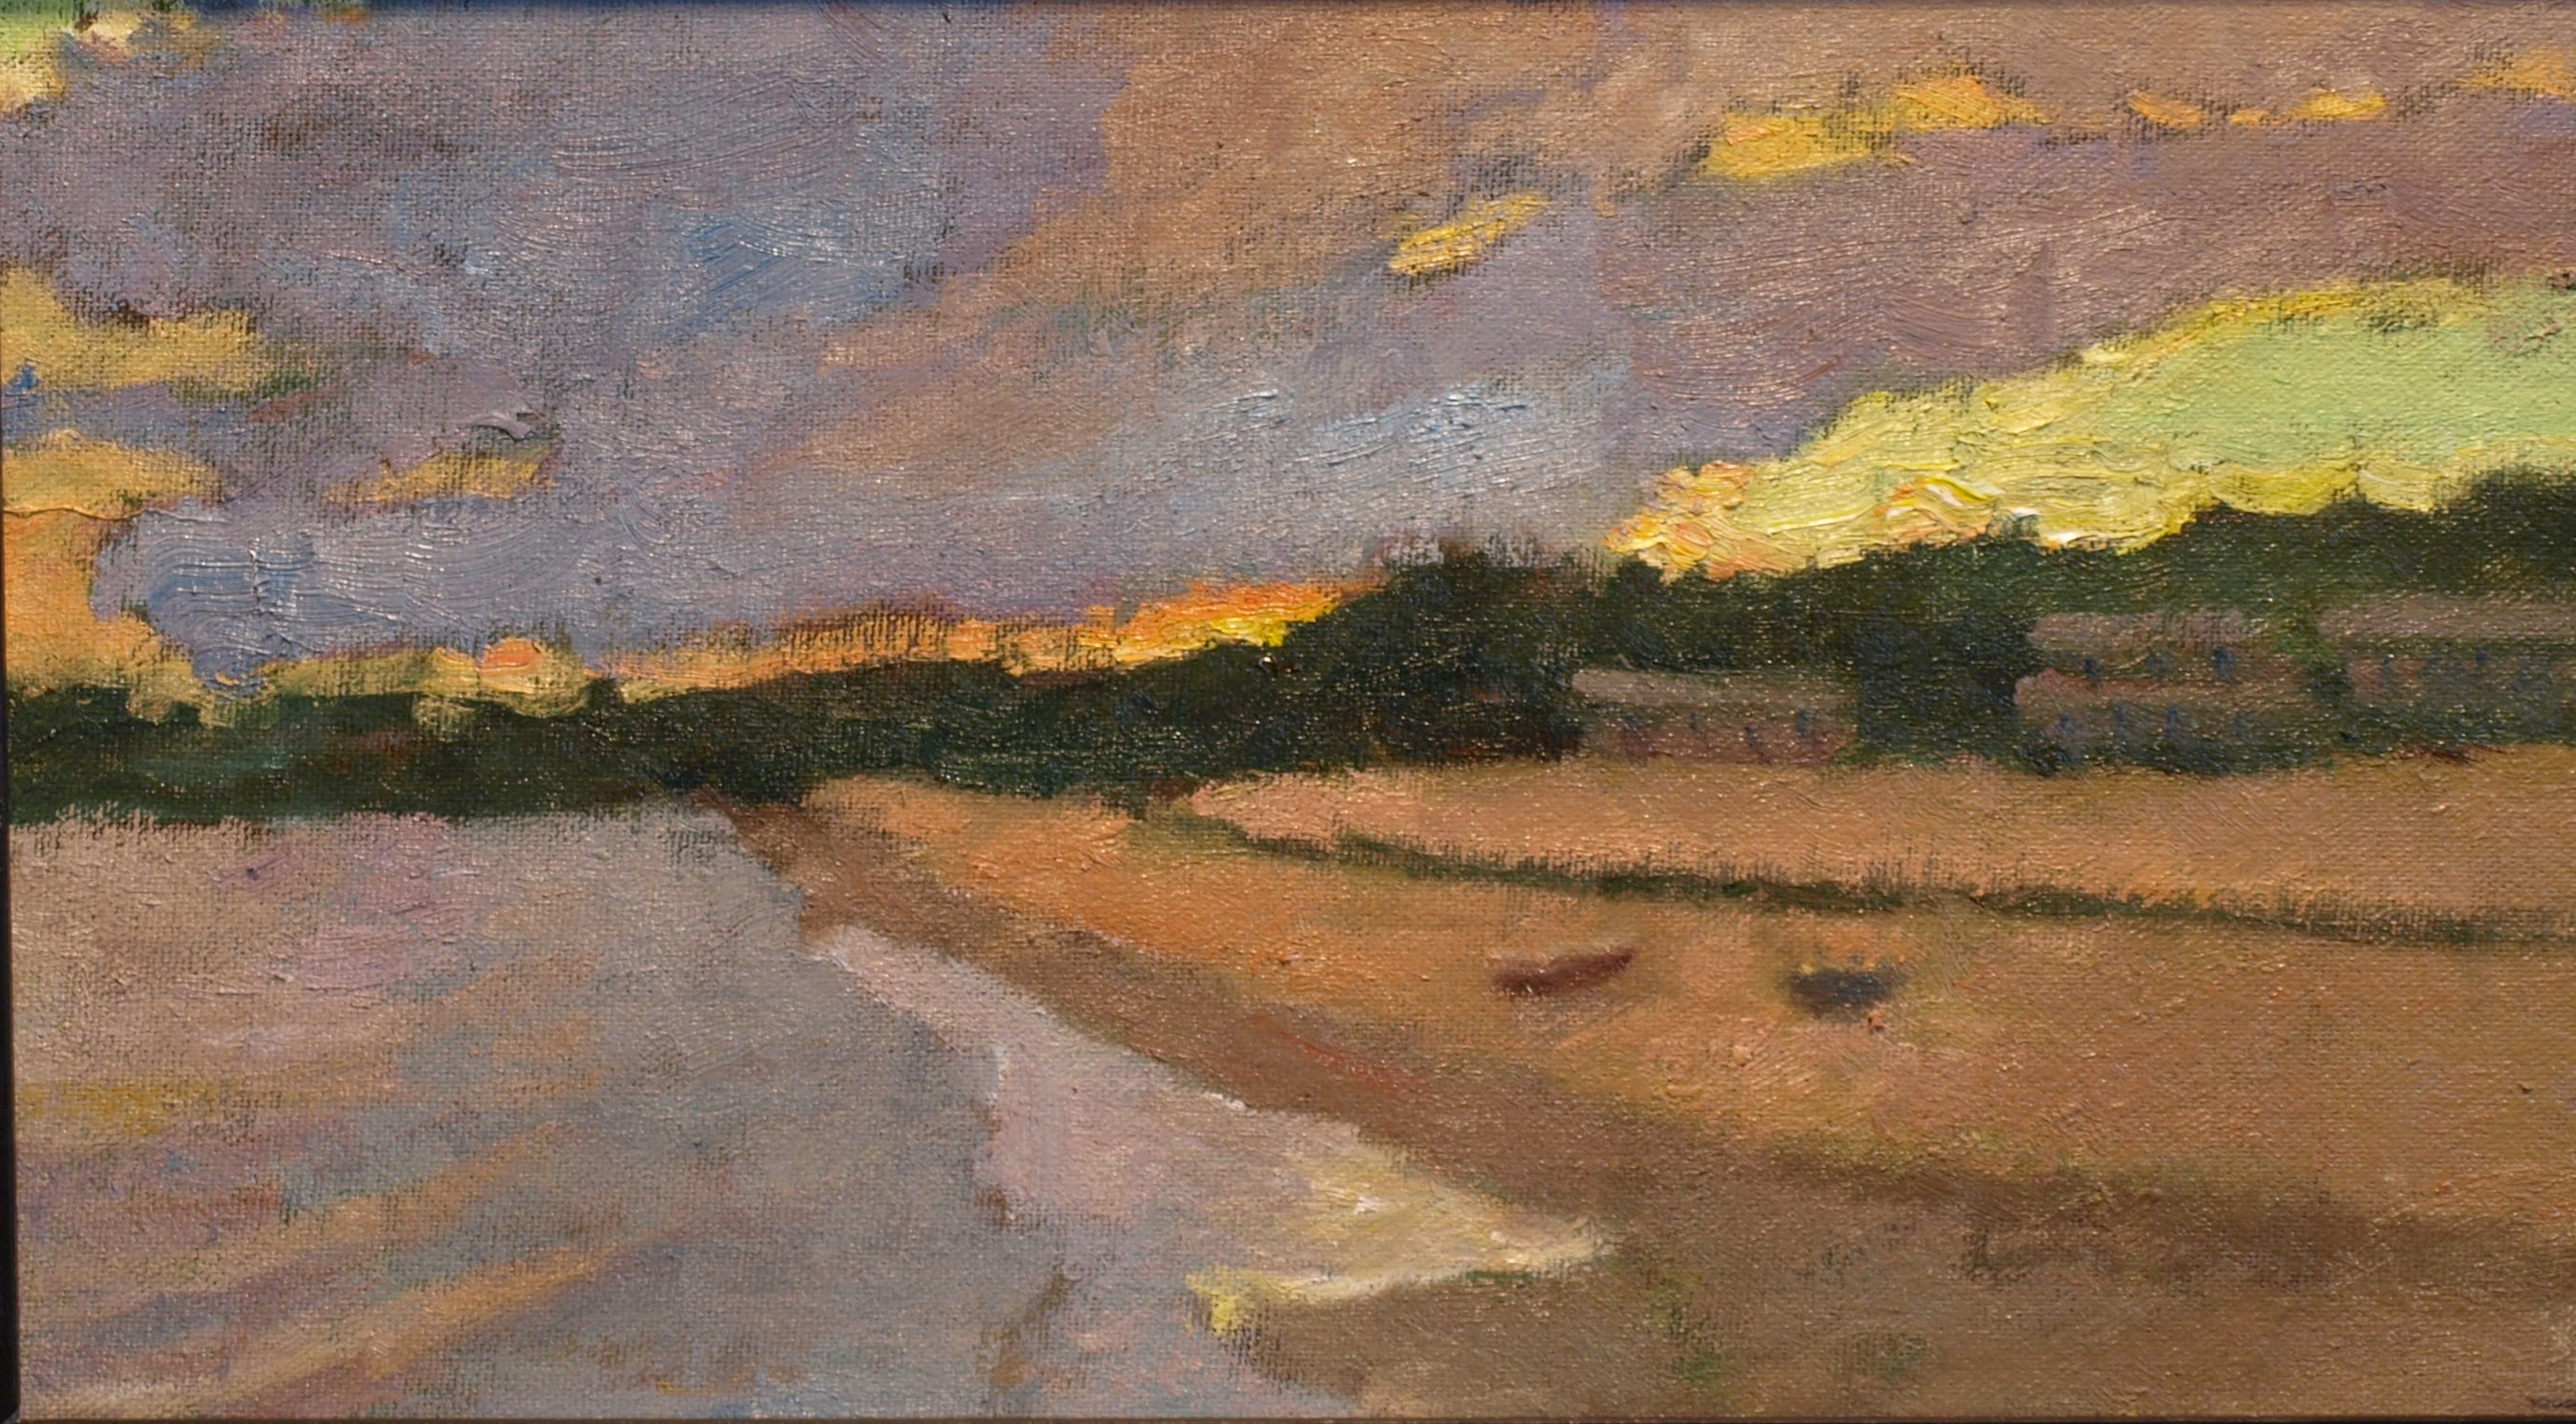 Provincetown Shoreline, Oil on Canvas on Panel, 8 x 14 Inches, by Richard Stalter, $300